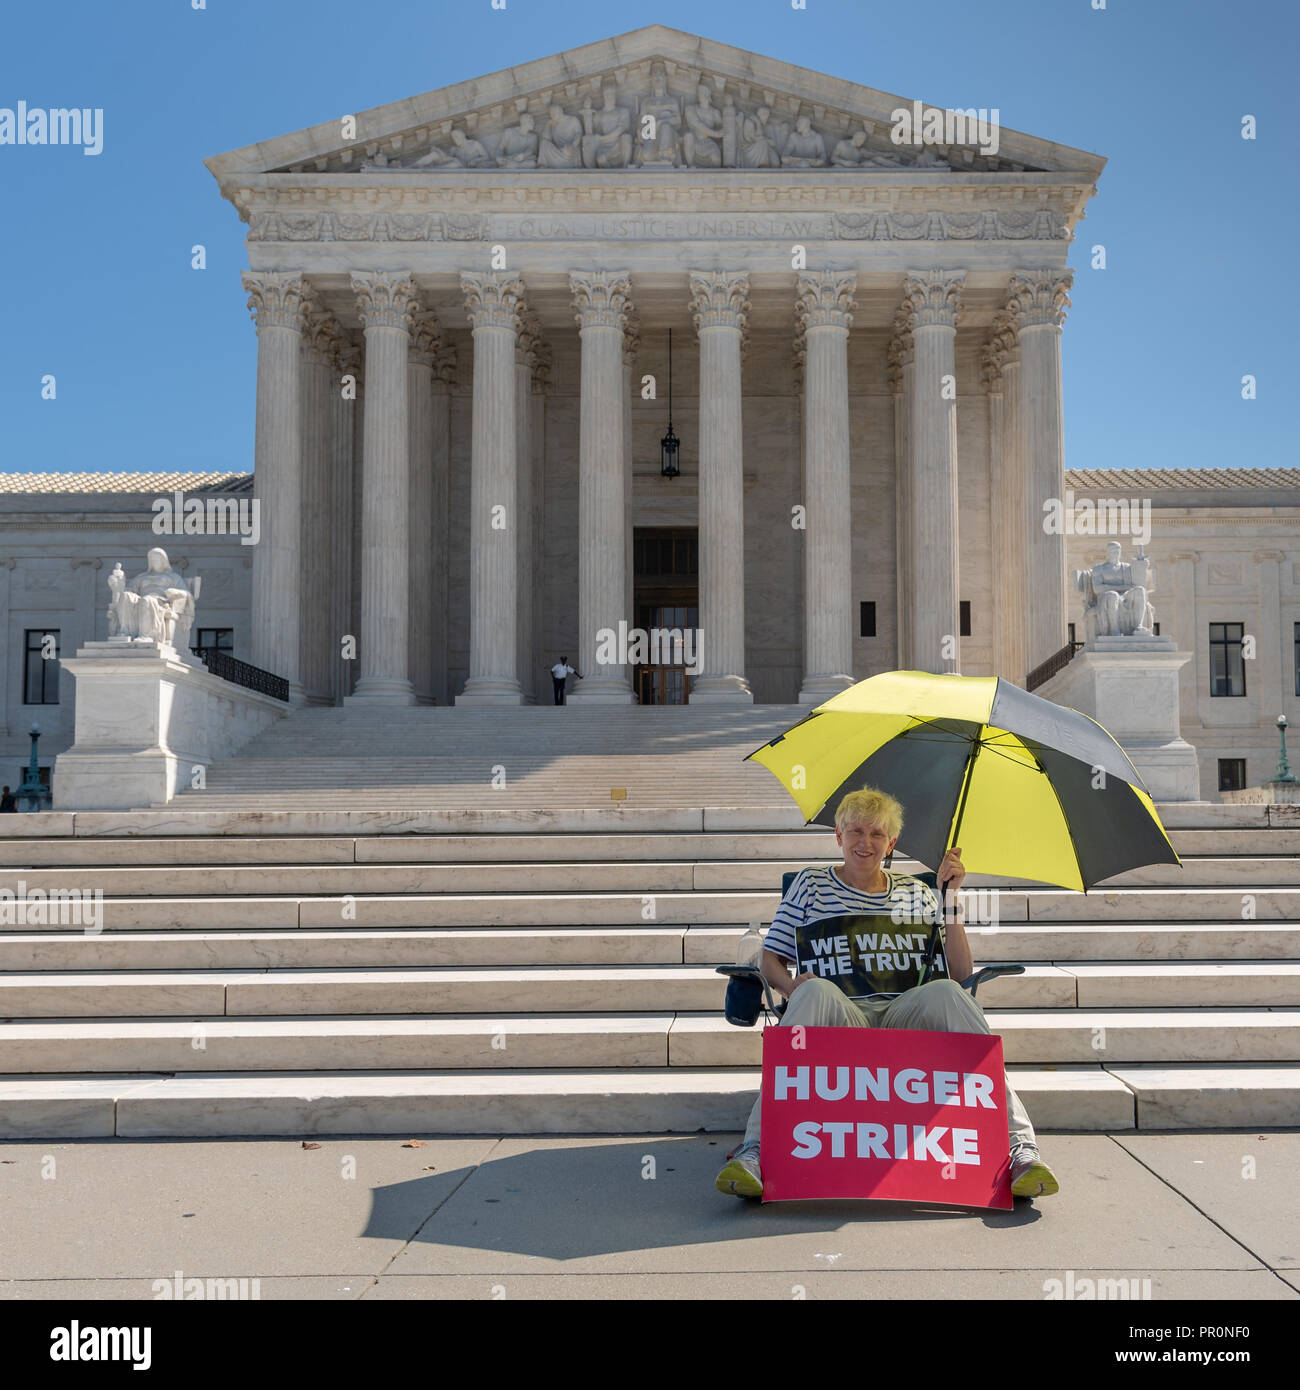 Women conducting a hunger strike to bring attention to how Congress is handling the Brett Kavanaugh selection process to Supreme Court Justice - Stock Image